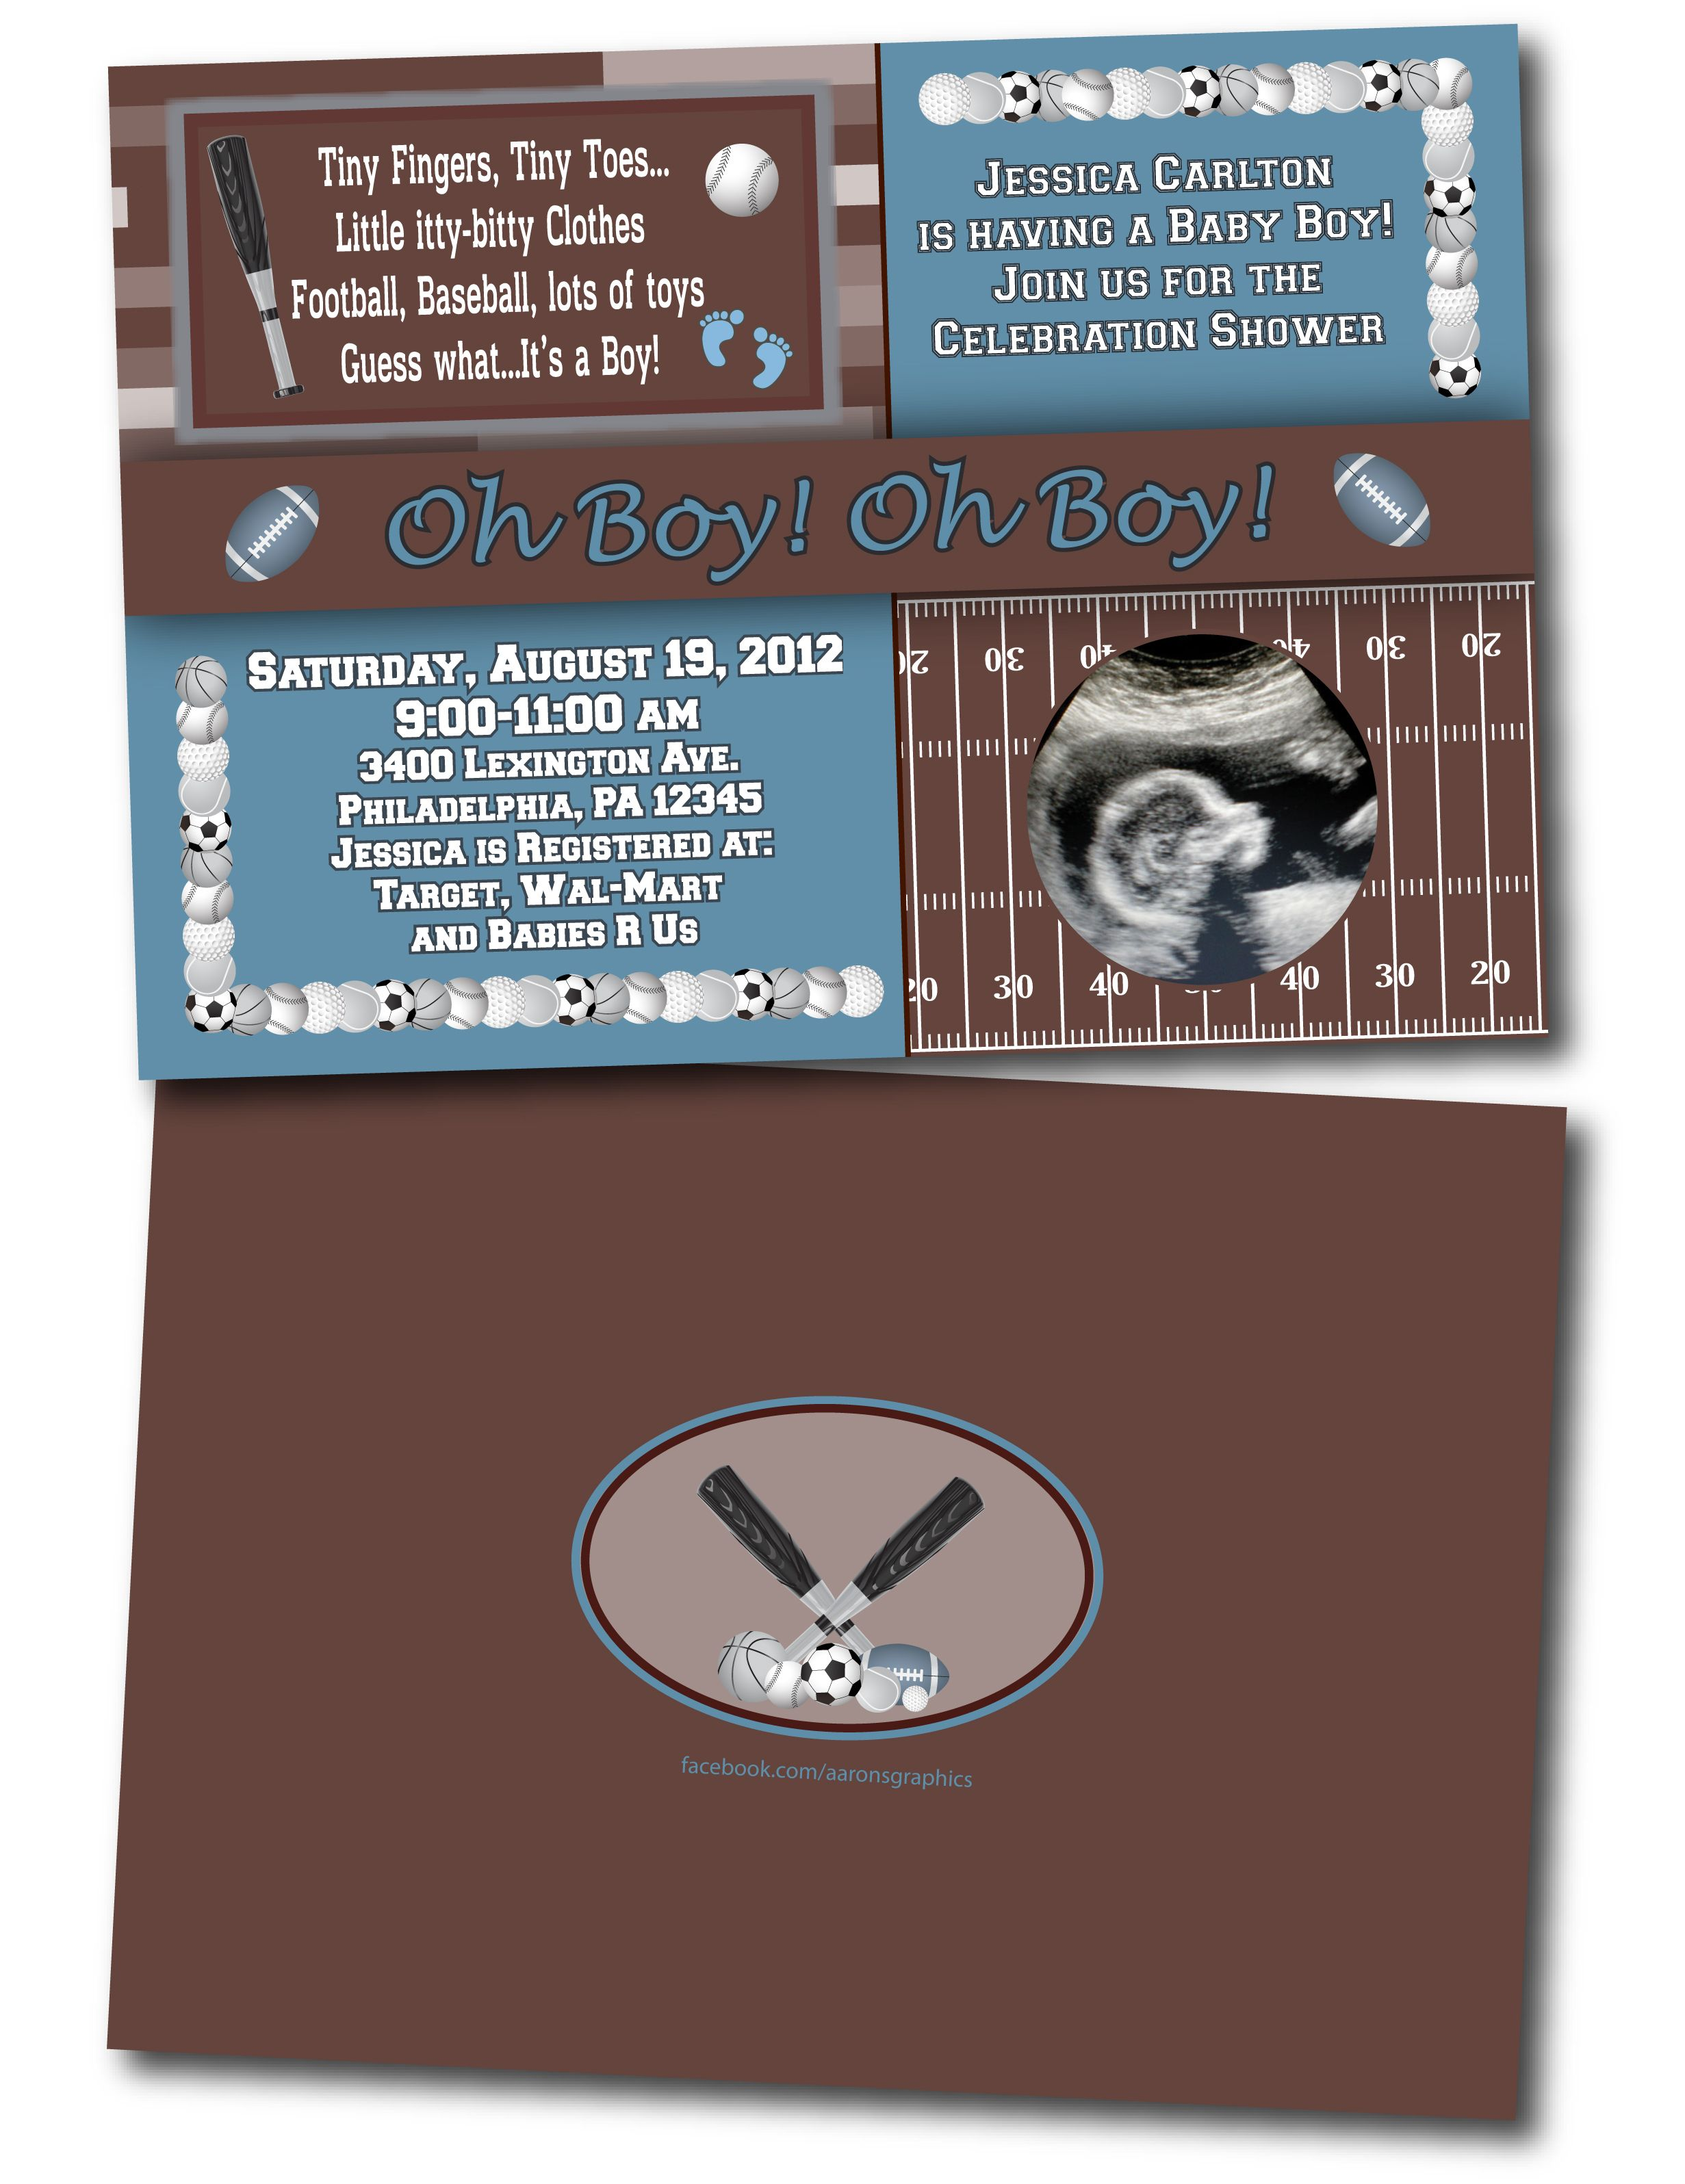 Sports Baby Shower Invitation Get More Information At Facebookcomaaronsgraphics Or